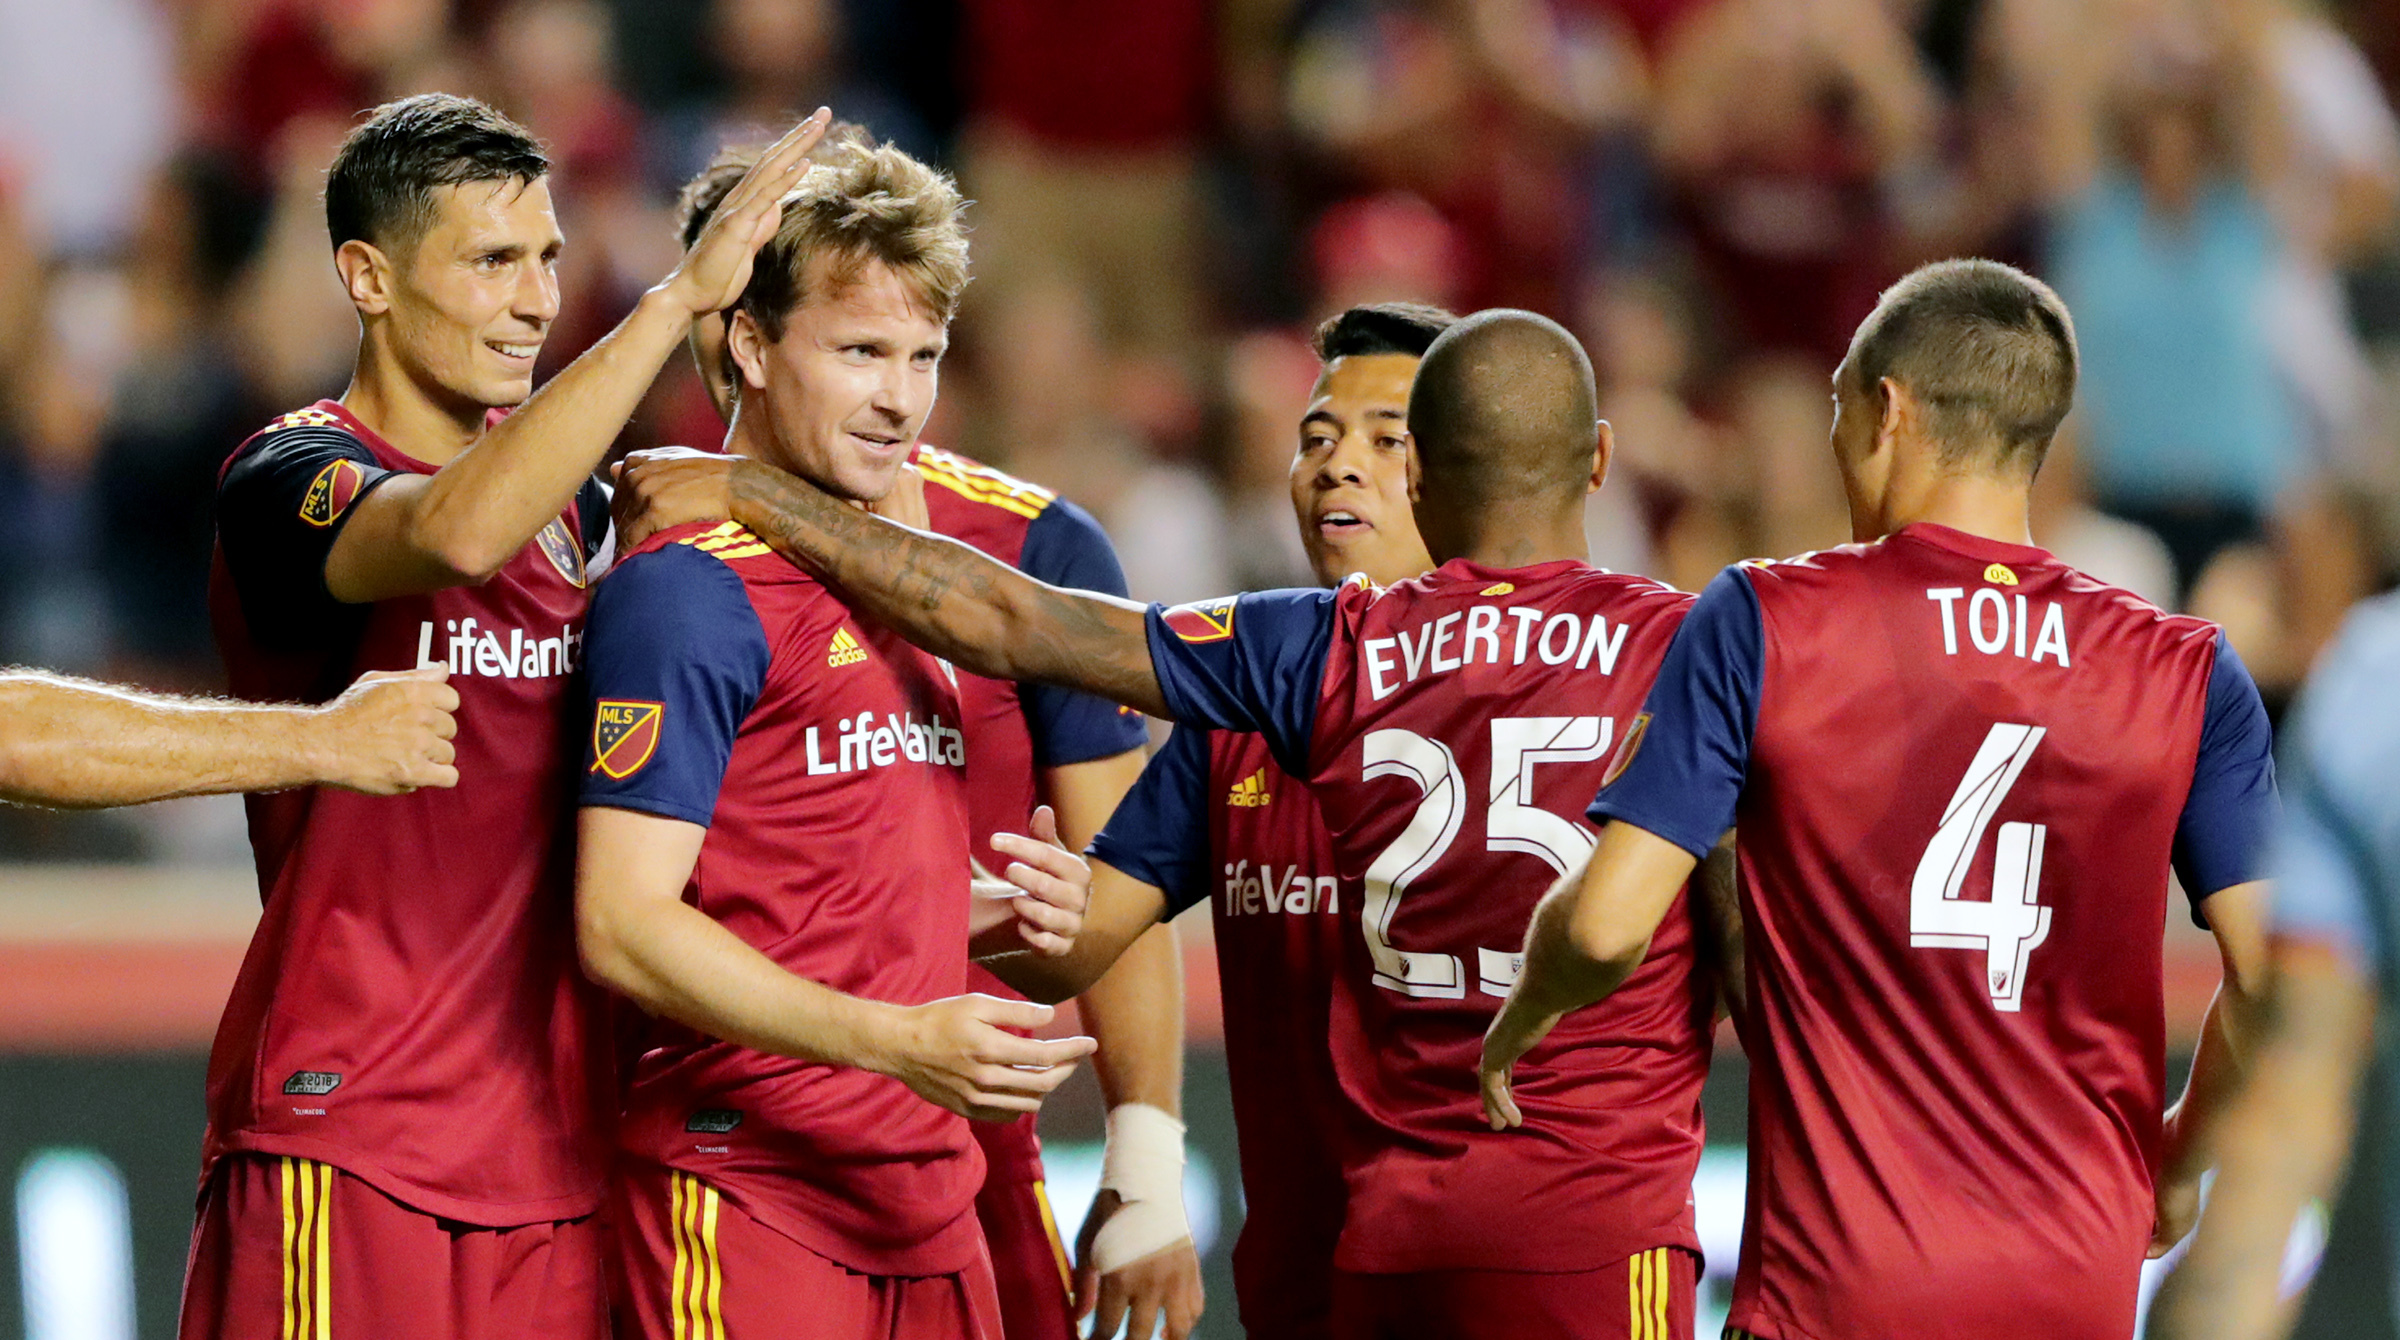 Real Salt Lake midfielder Nick Besler (13) celebrates a goal with teammates as Real Salt Lake and New York City FC play at Rio Tinto Stadium in Sandy on Saturday, Aug. 3, 2019. RSL won 3-1.